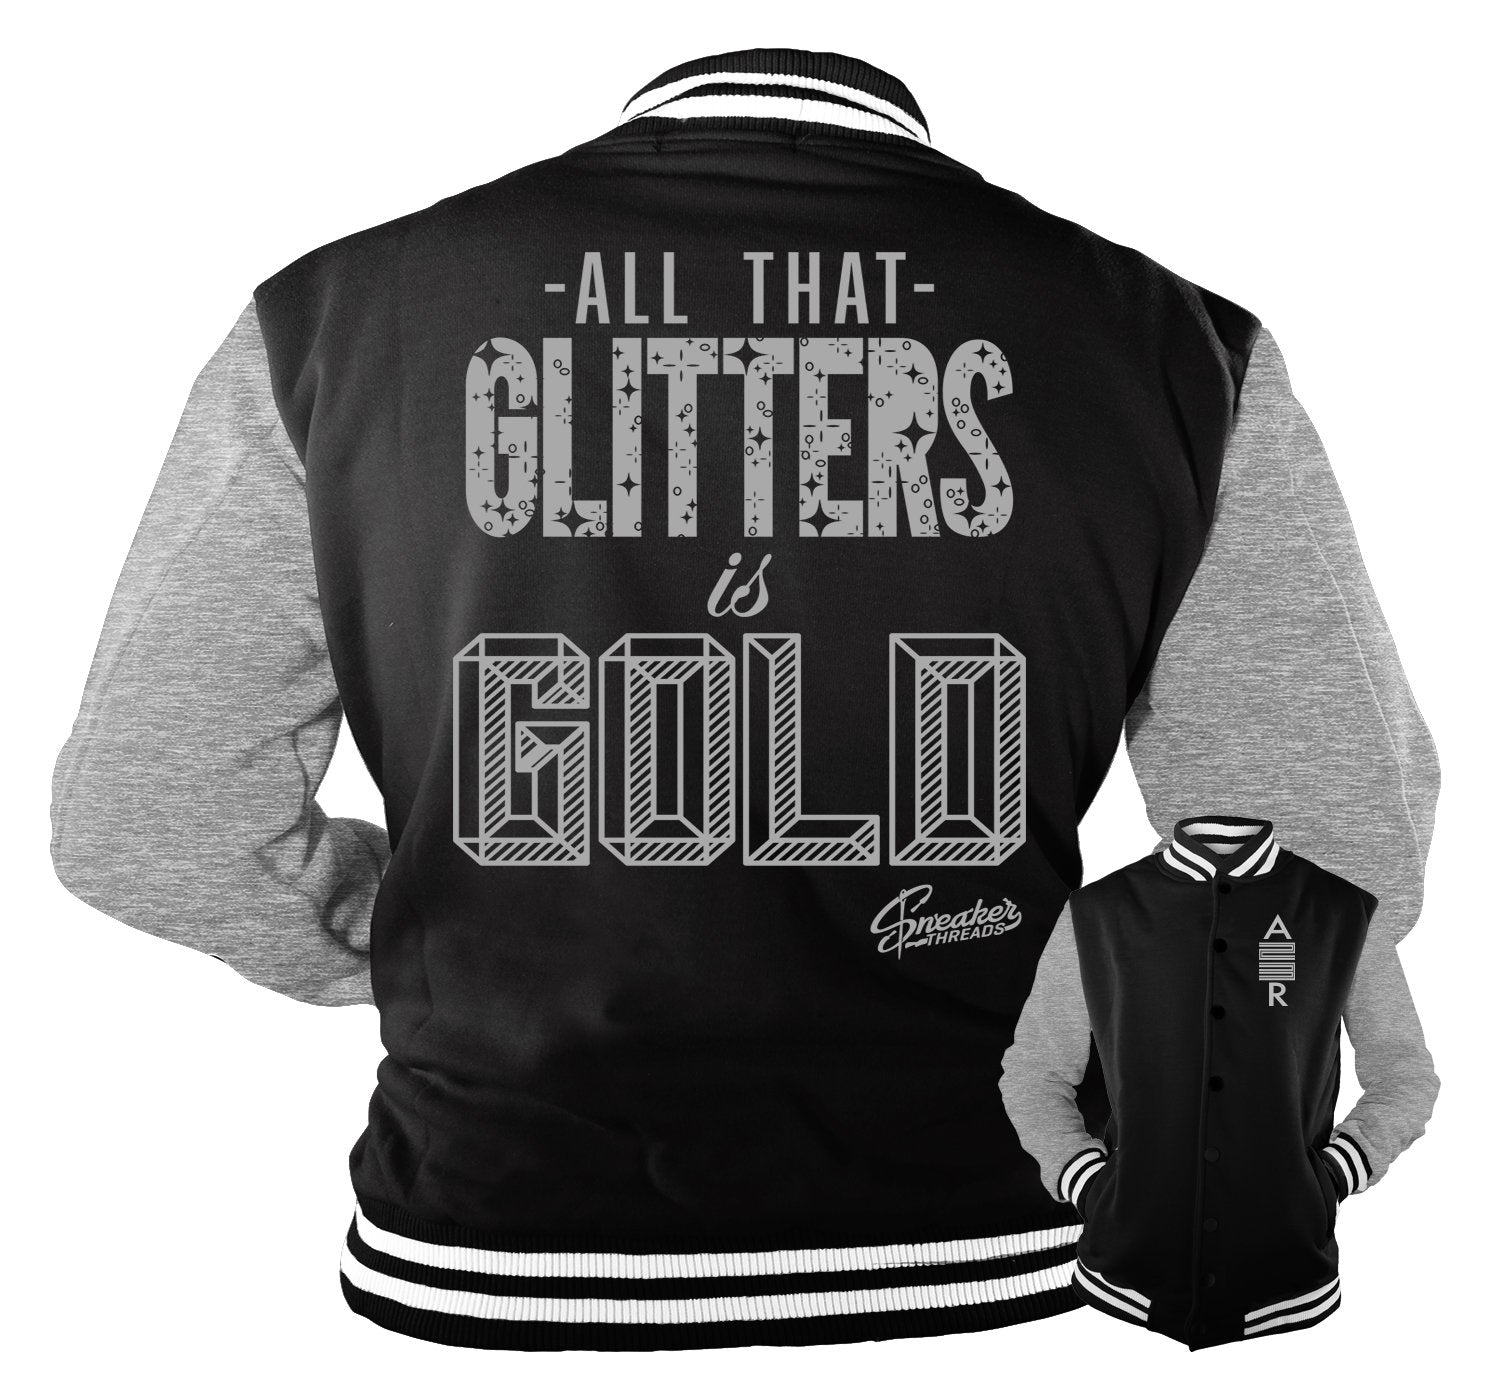 Glitters Jacket to match Metallic Silver 11's